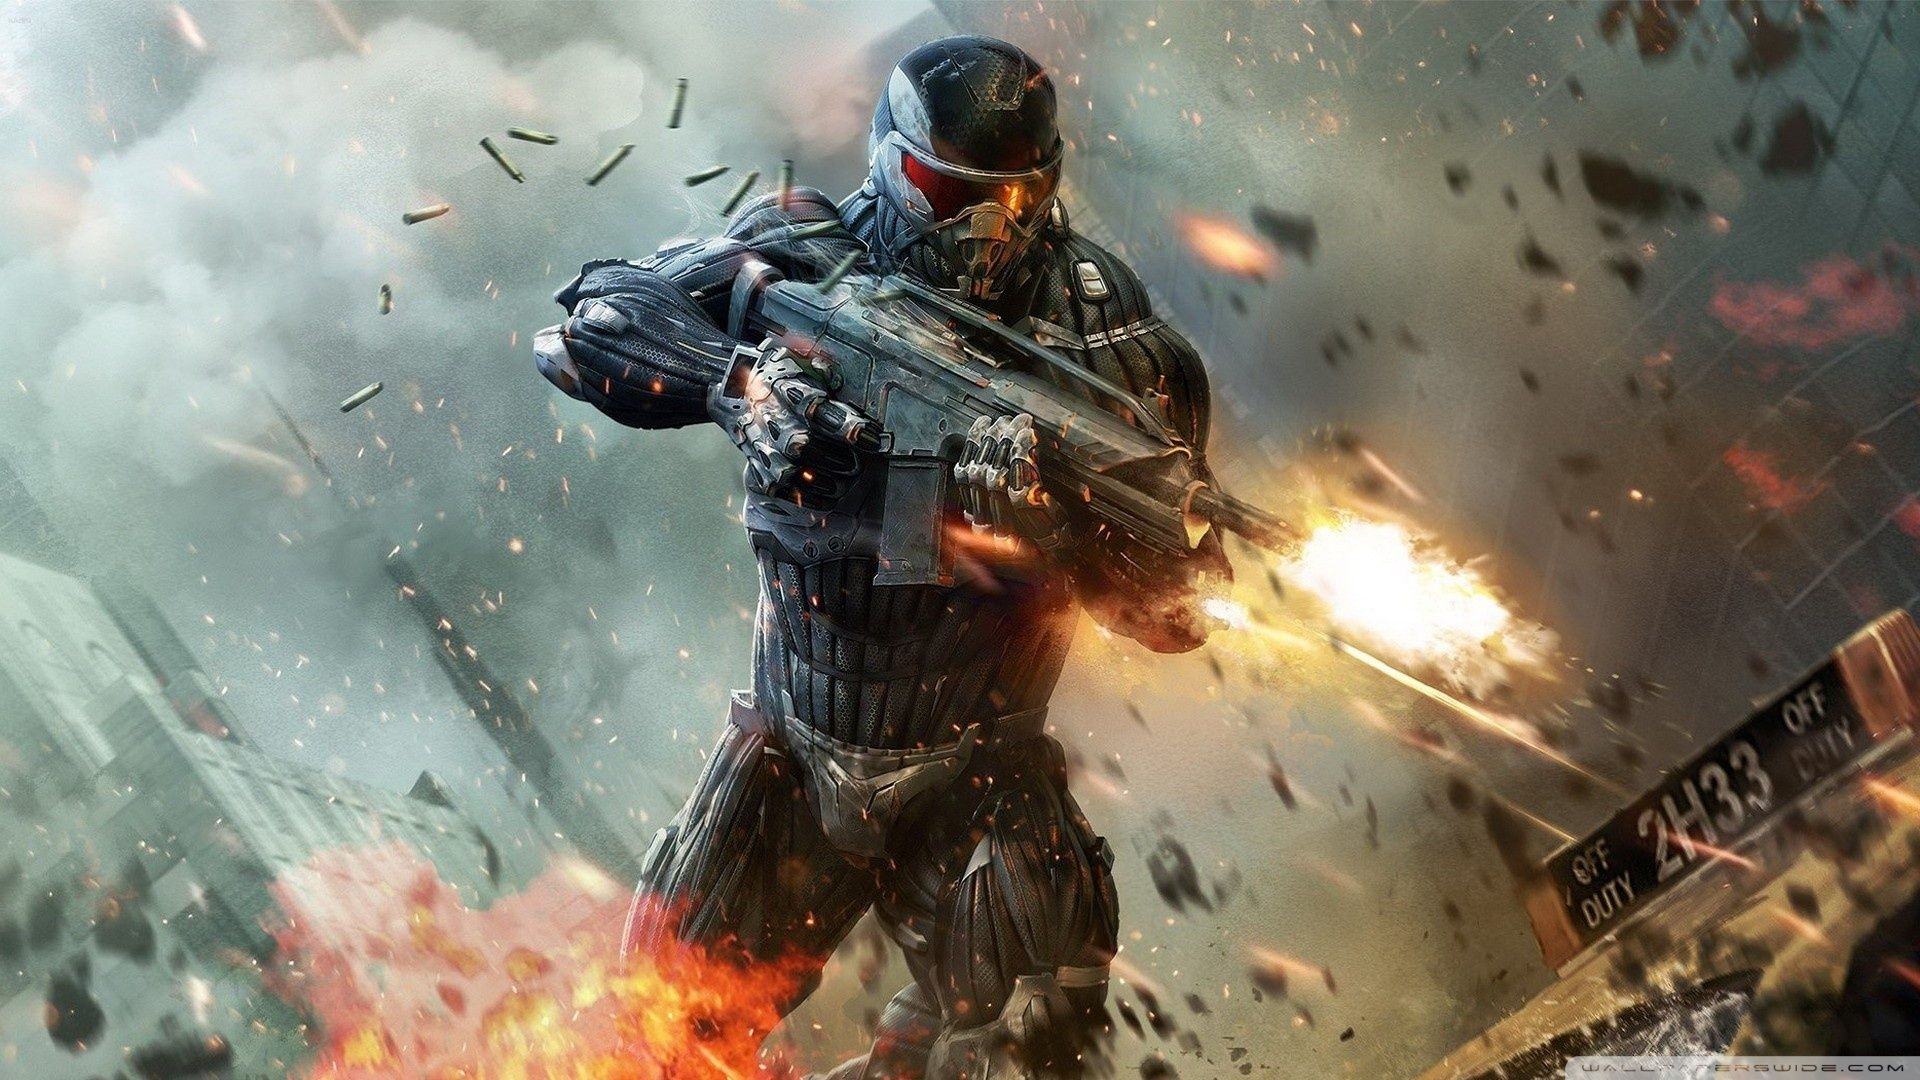 10 New Hd Wallpapers 1080p Games Full Hd 1920 1080 For Pc Background